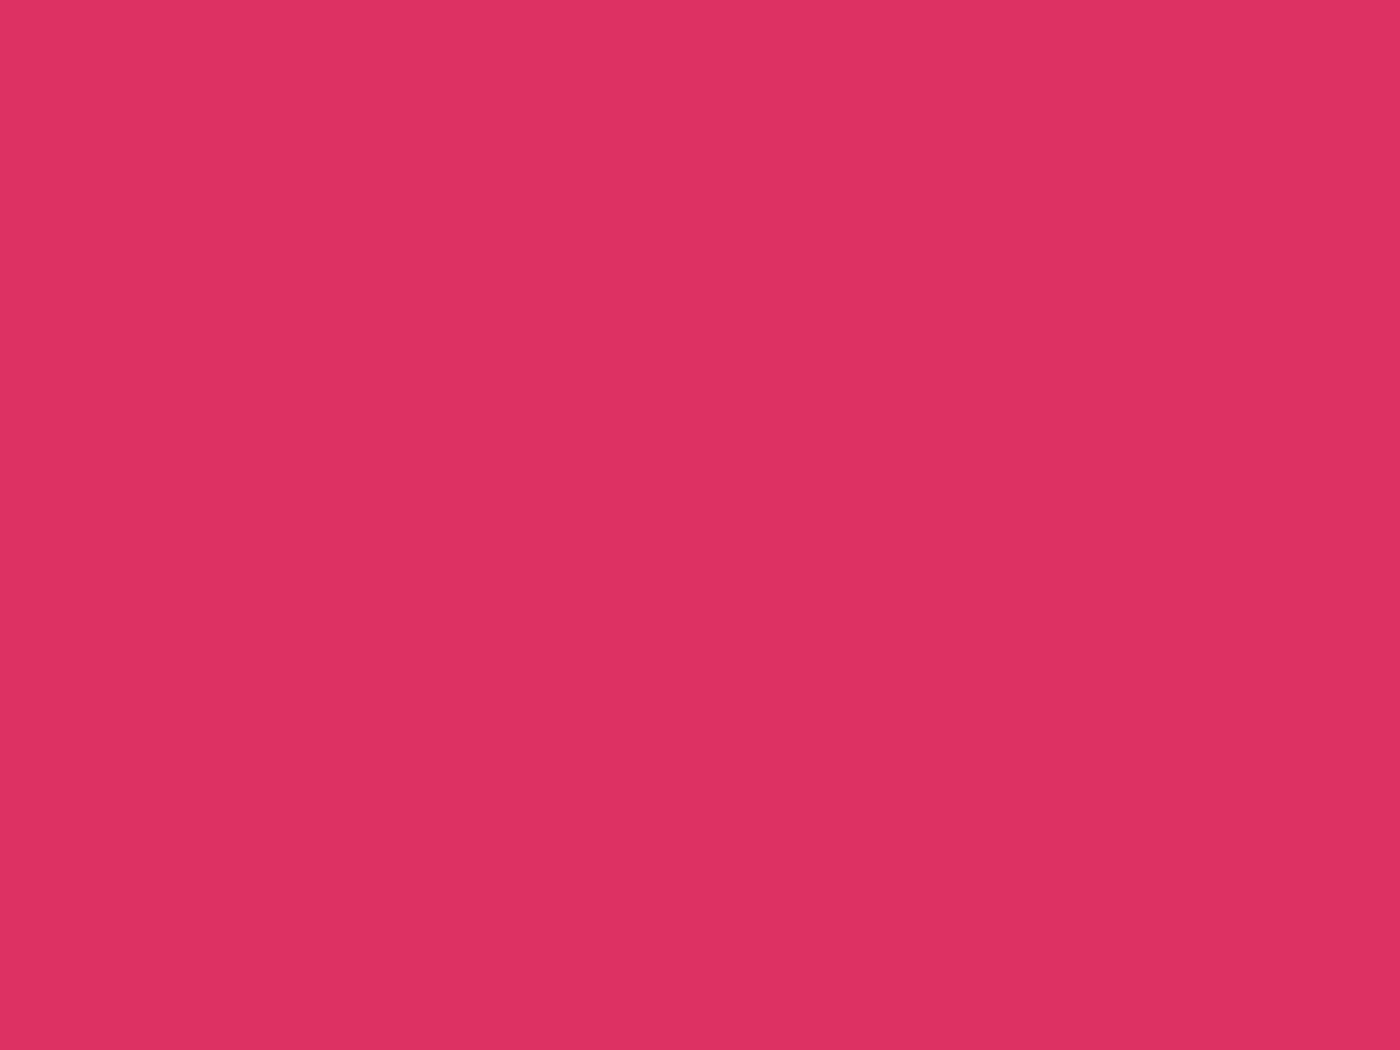 1400x1050 Cerise Solid Color Background